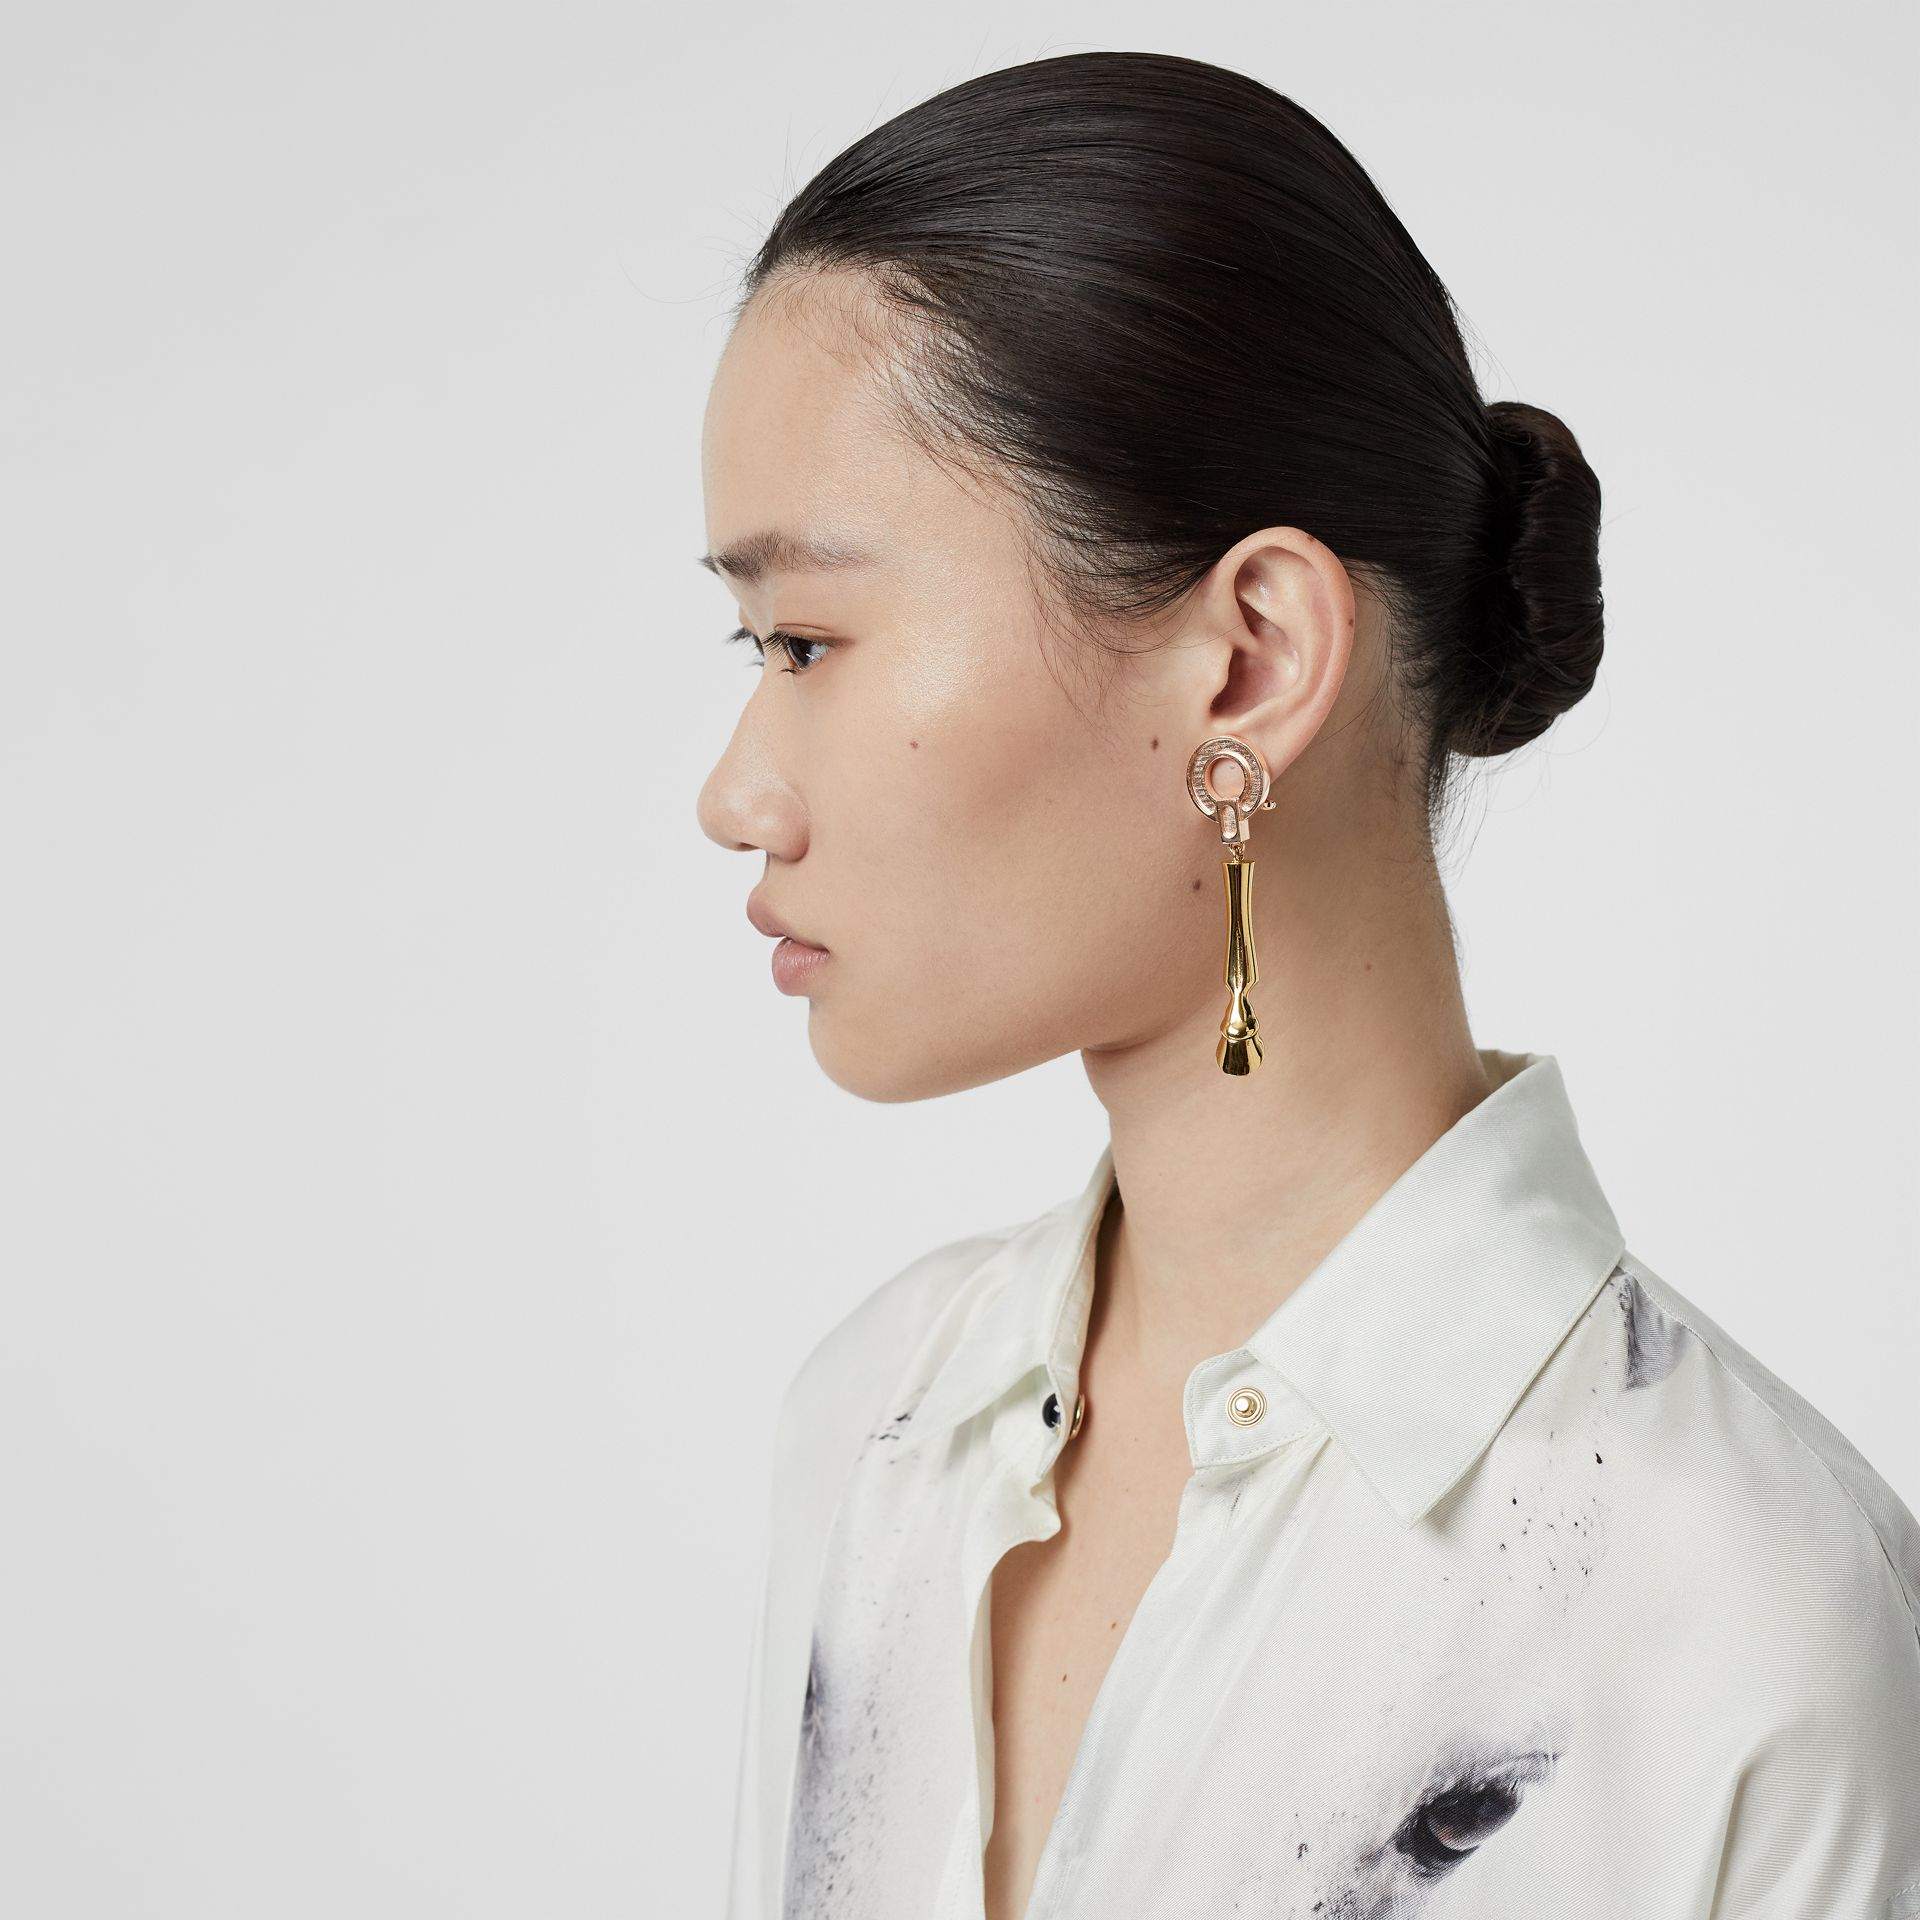 Gold and Rose Gold-plated Hoof Drop Earrings in /light - Women | Burberry Singapore - gallery image 2